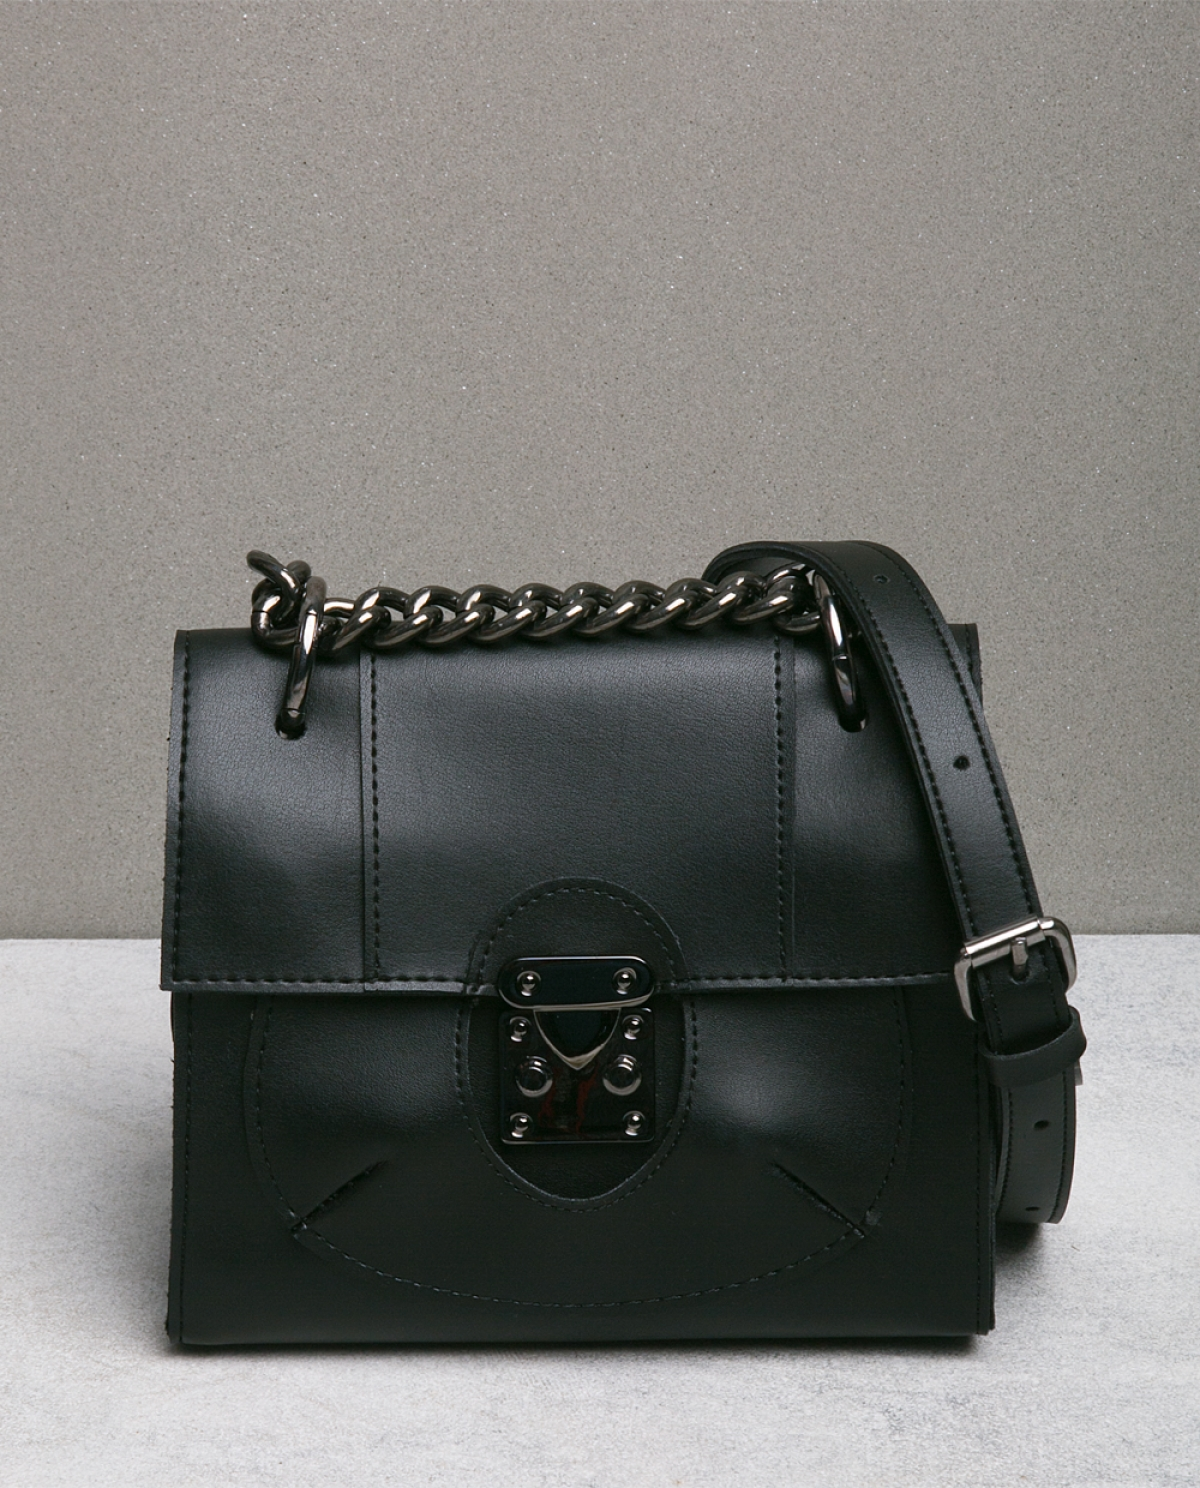 'Lady' Black Leather Shoulder Bag